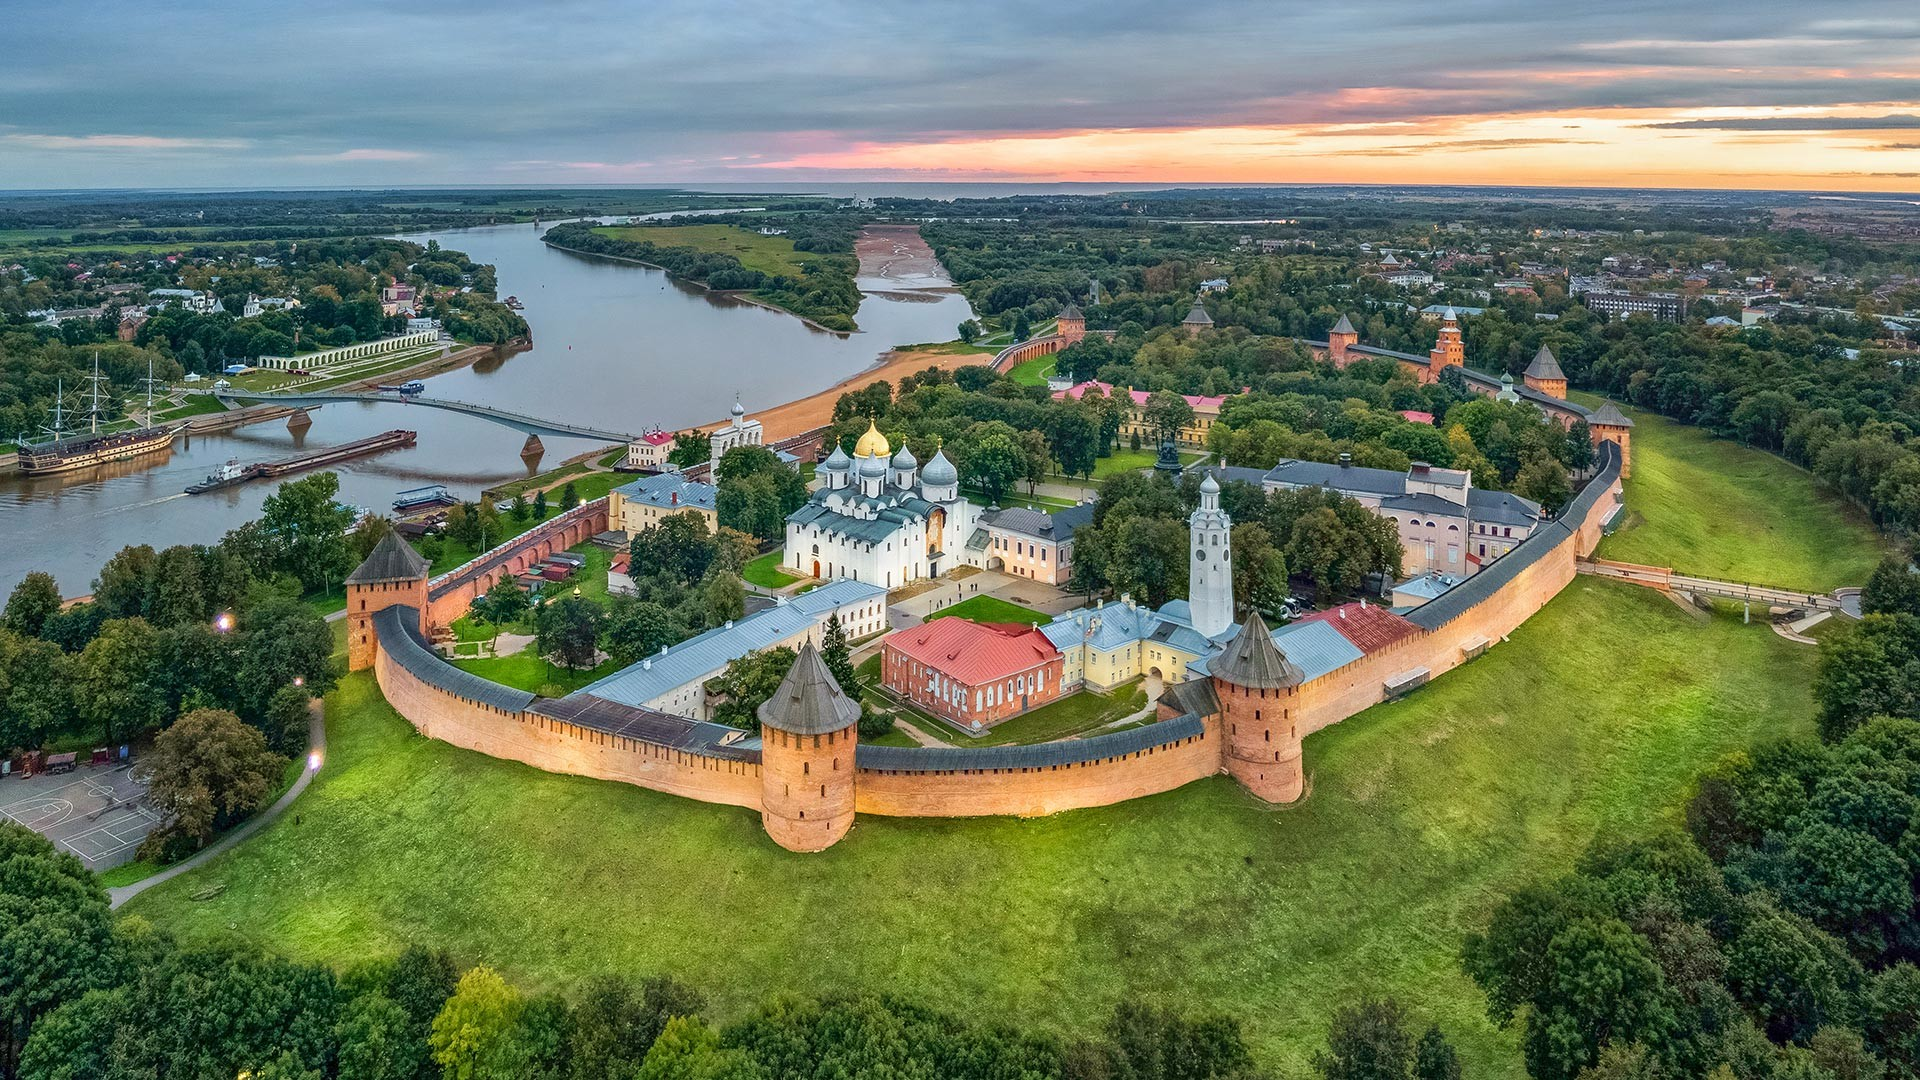 The Novgorod Detinets, aerial view